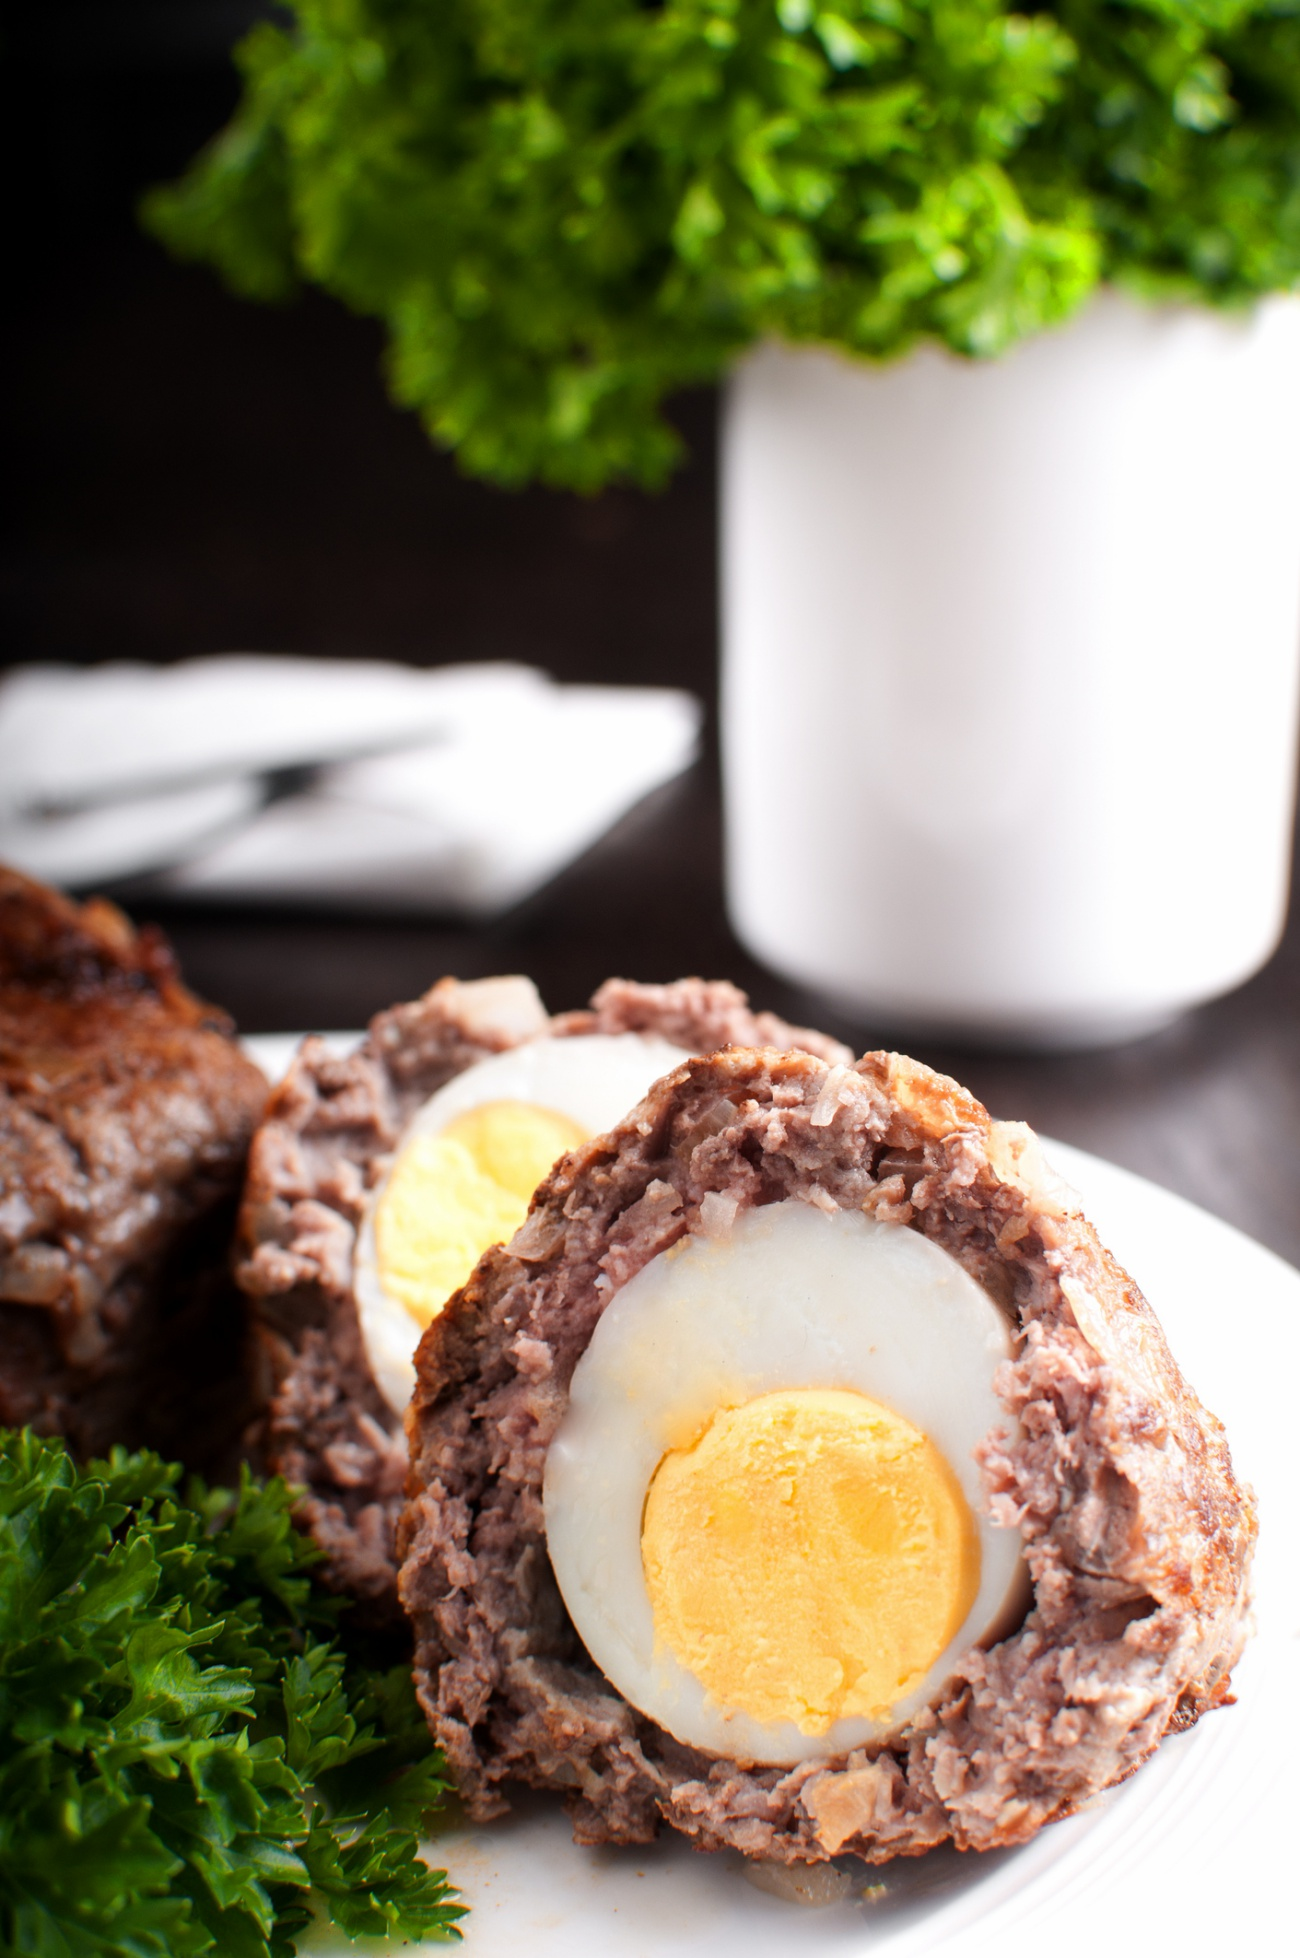 Scotch eggs traditional dish